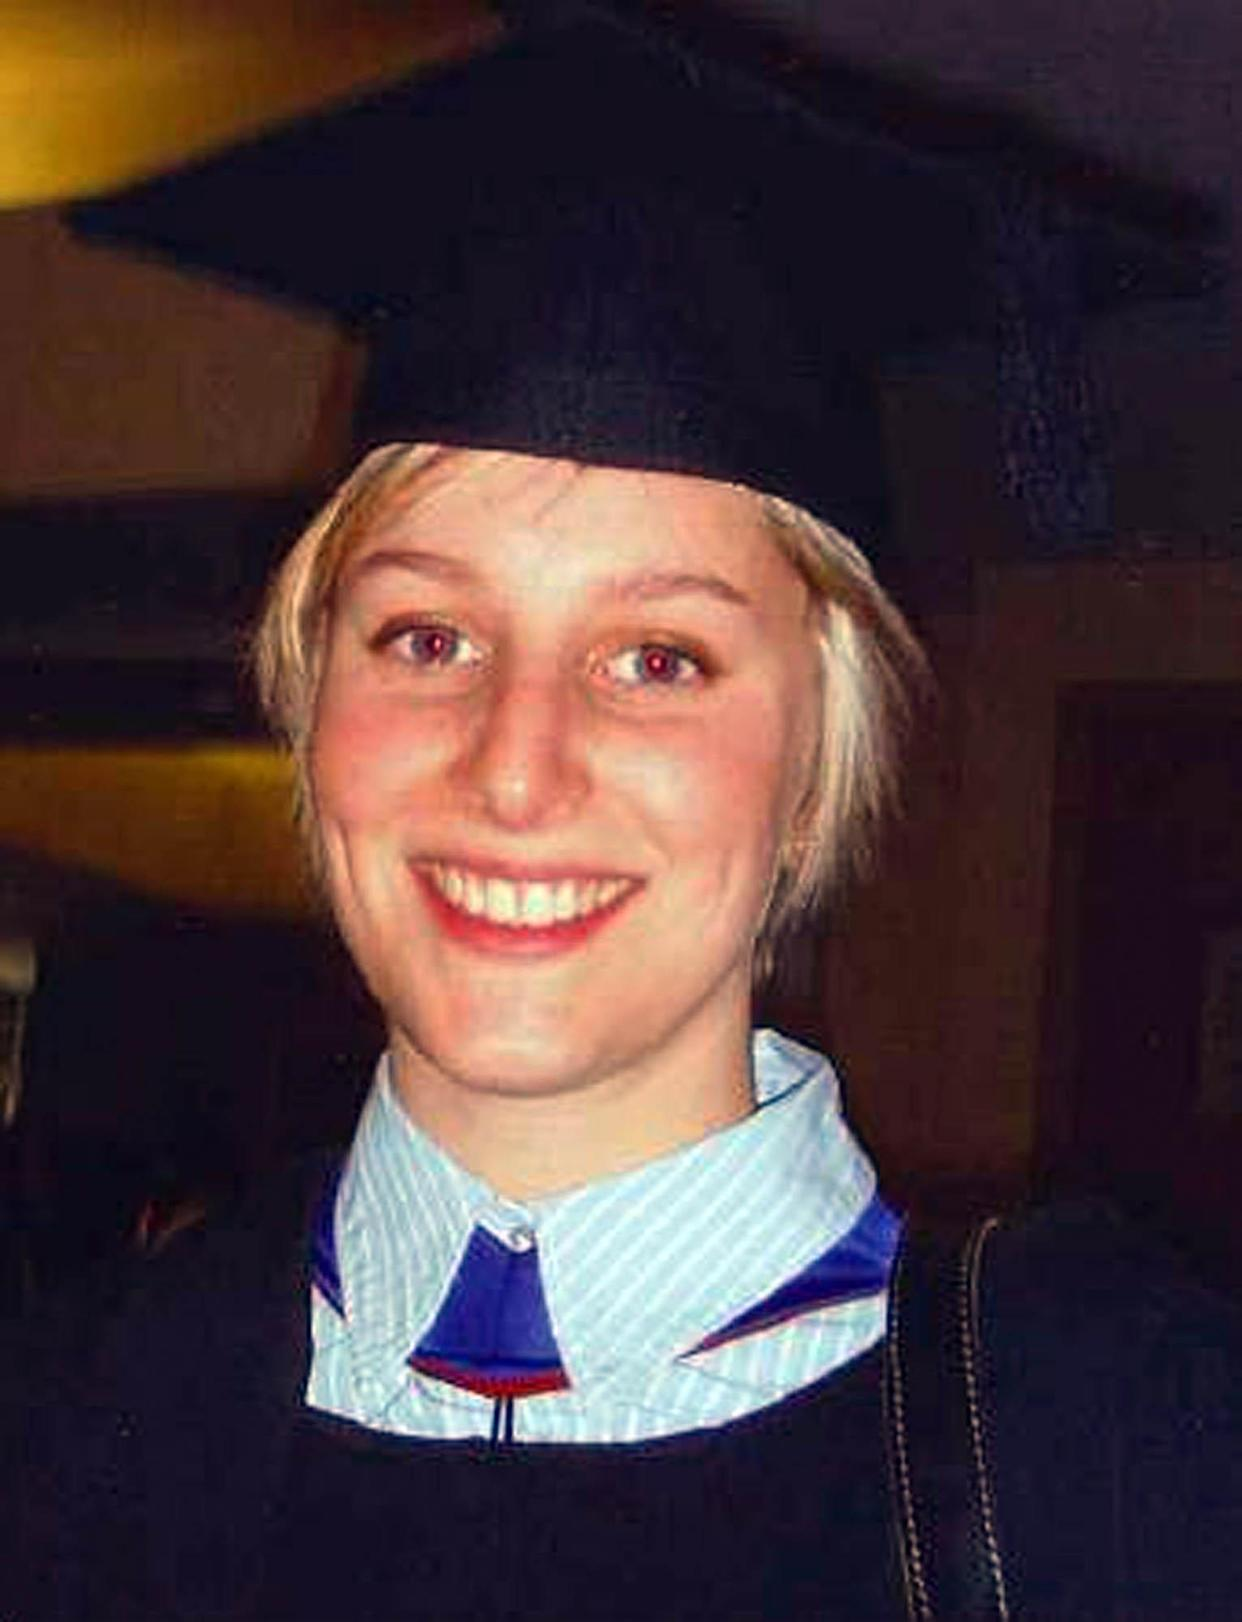 BRISTOL, ENGLAND - NOVEMBER:  A handout photograph provided by Avon and Somerset Police, of Joanna Yeates at her graduation in November 2010 in Bristol, England. The body of 25-year-old landscape architect Joanna Yeates was discovered on Christmas Day after she went missing on December 17, 2010.  (Photo by Avon and Somerset Police via Getty Images)